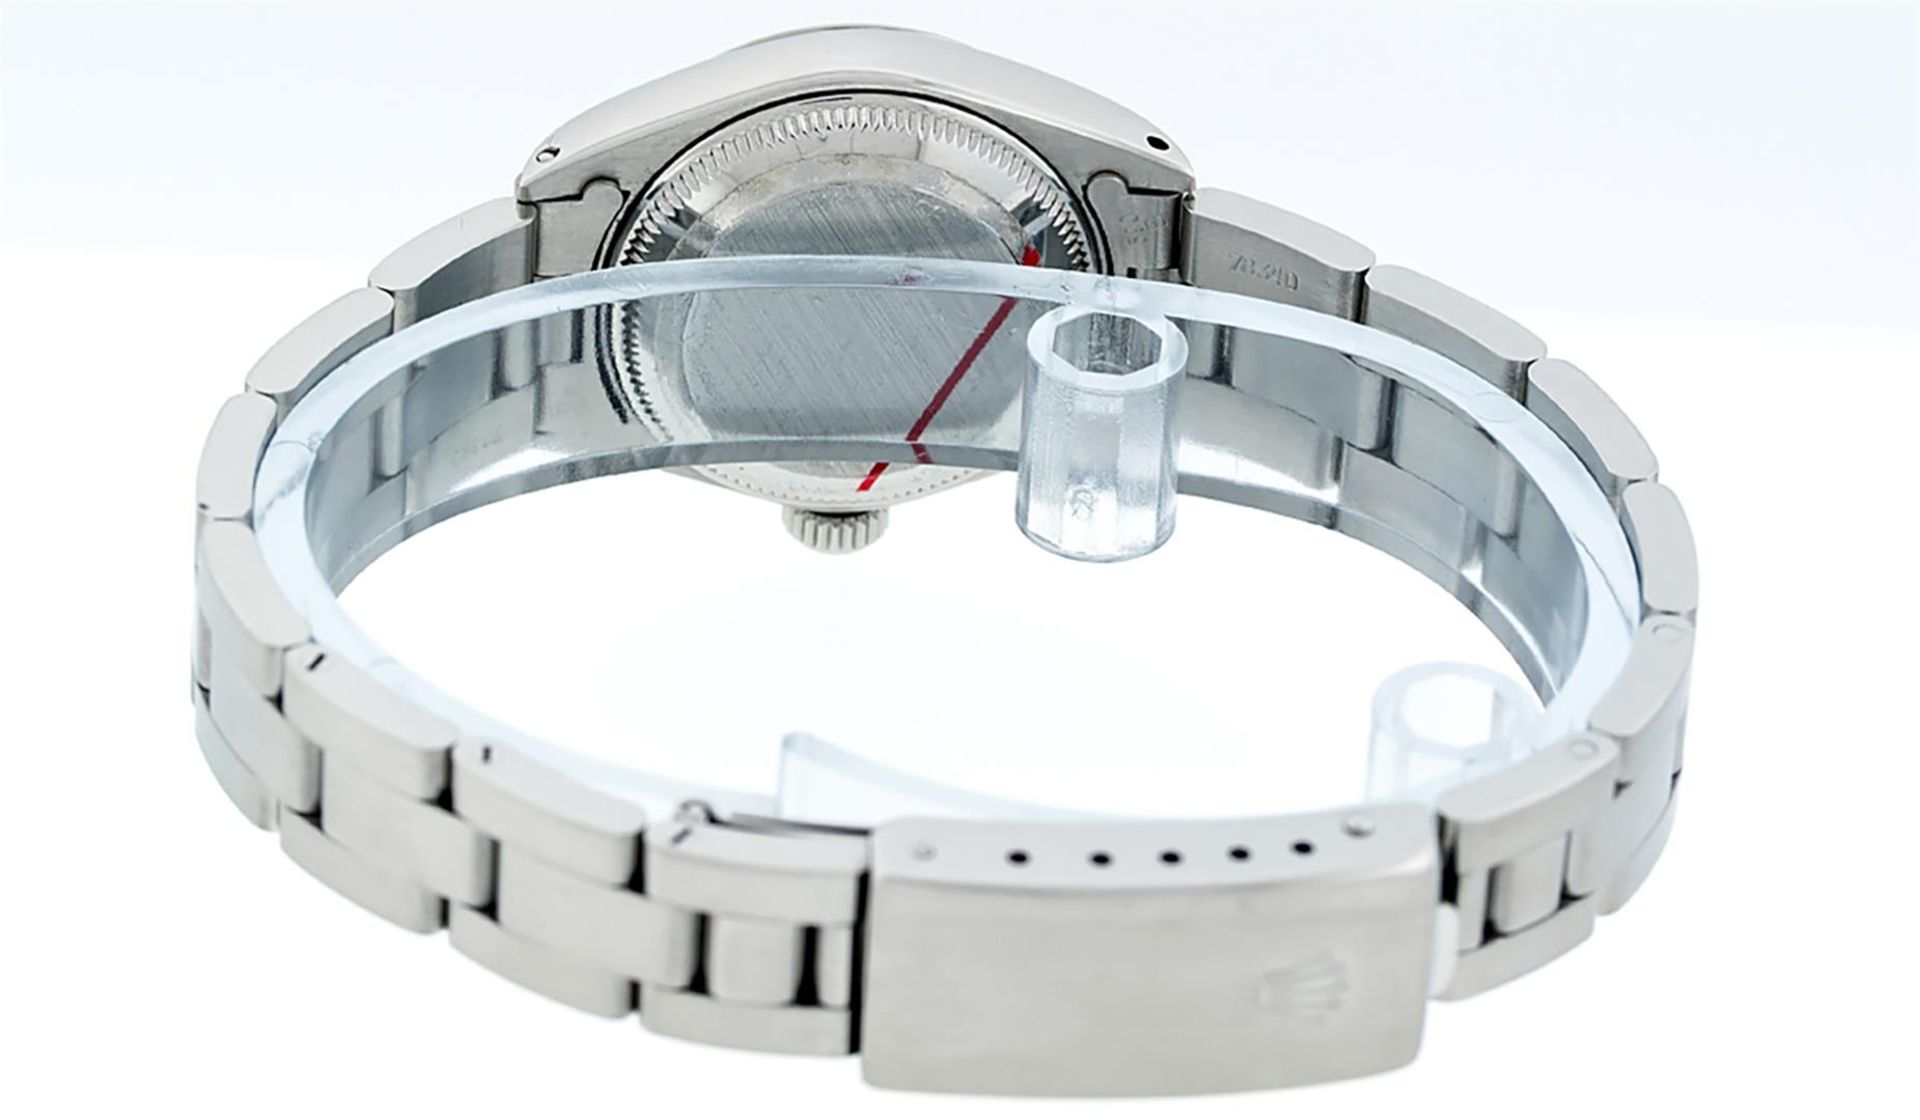 Rolex Ladies Stainless Steel Salmon Dial 26MM Oyster Band Datejust Wristwatch - Image 8 of 9